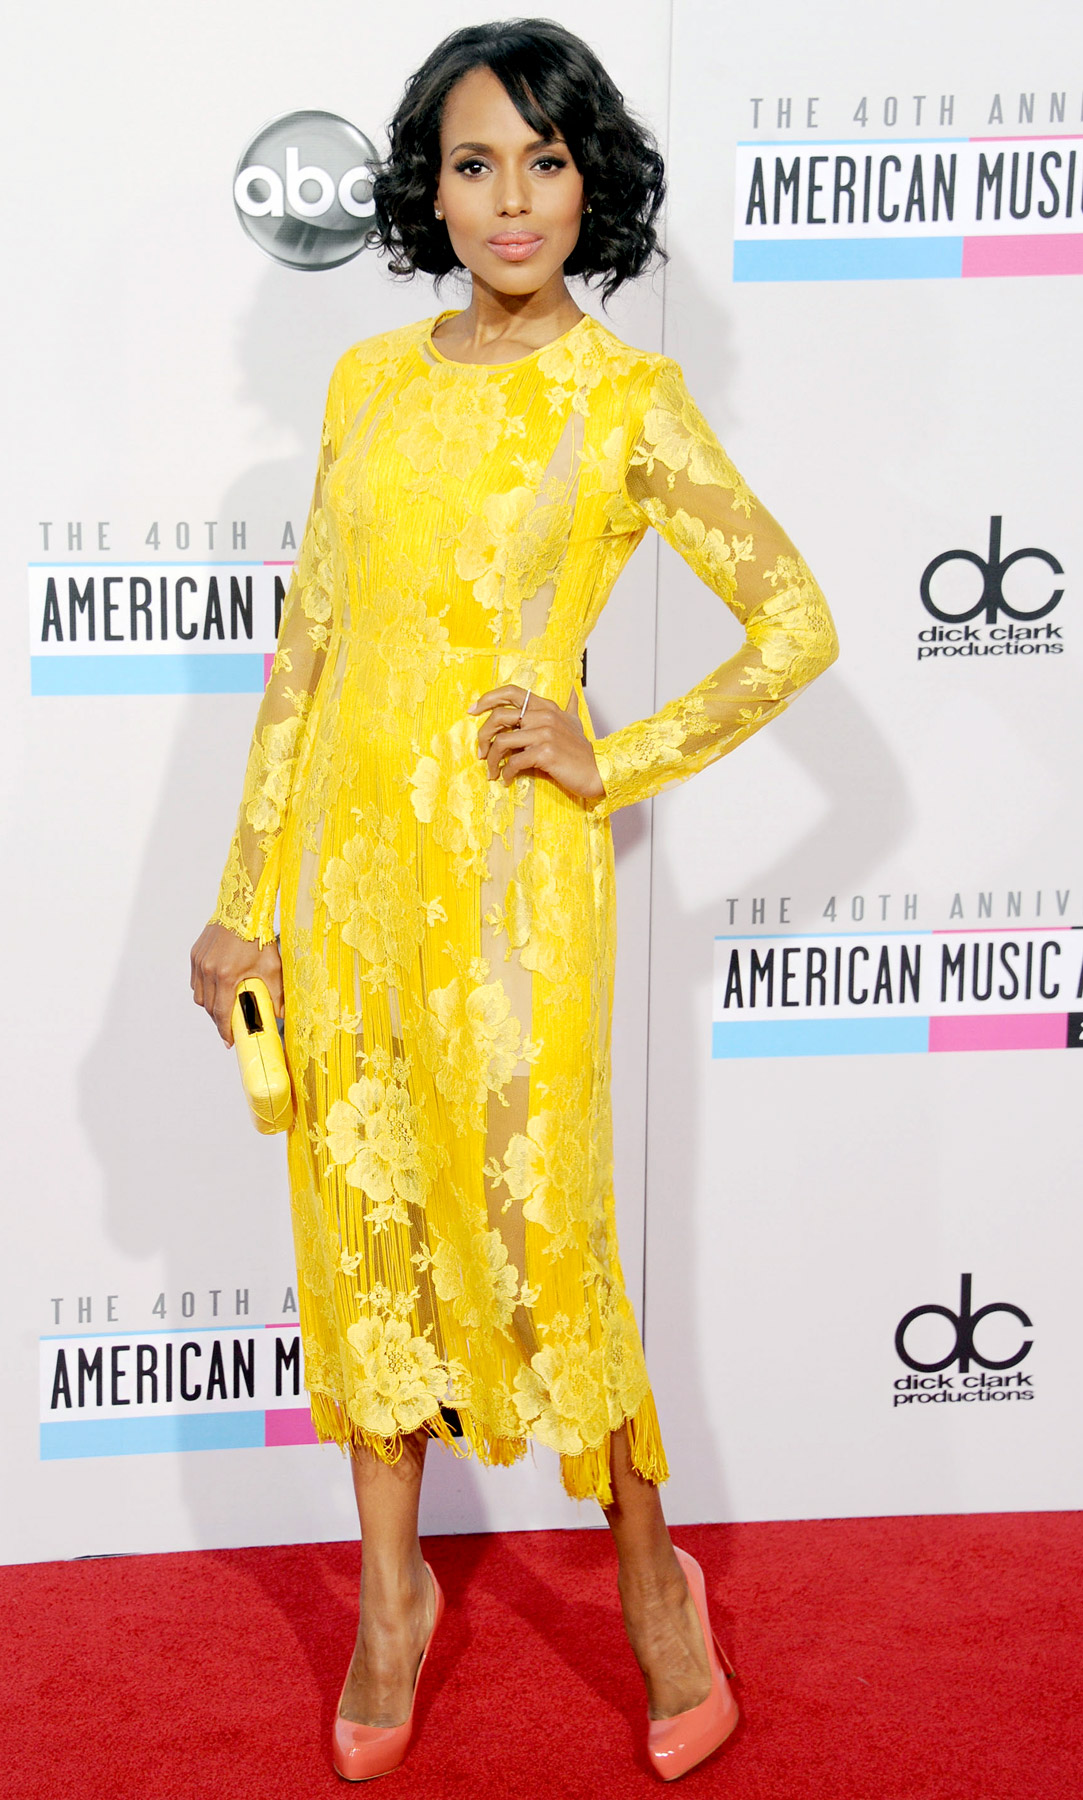 The actress looked fierce in a long-sleeved yellow Stella McCartney frock with fringe and lace detailing. She accessorized the look with coral Christian Louboutin pumps.